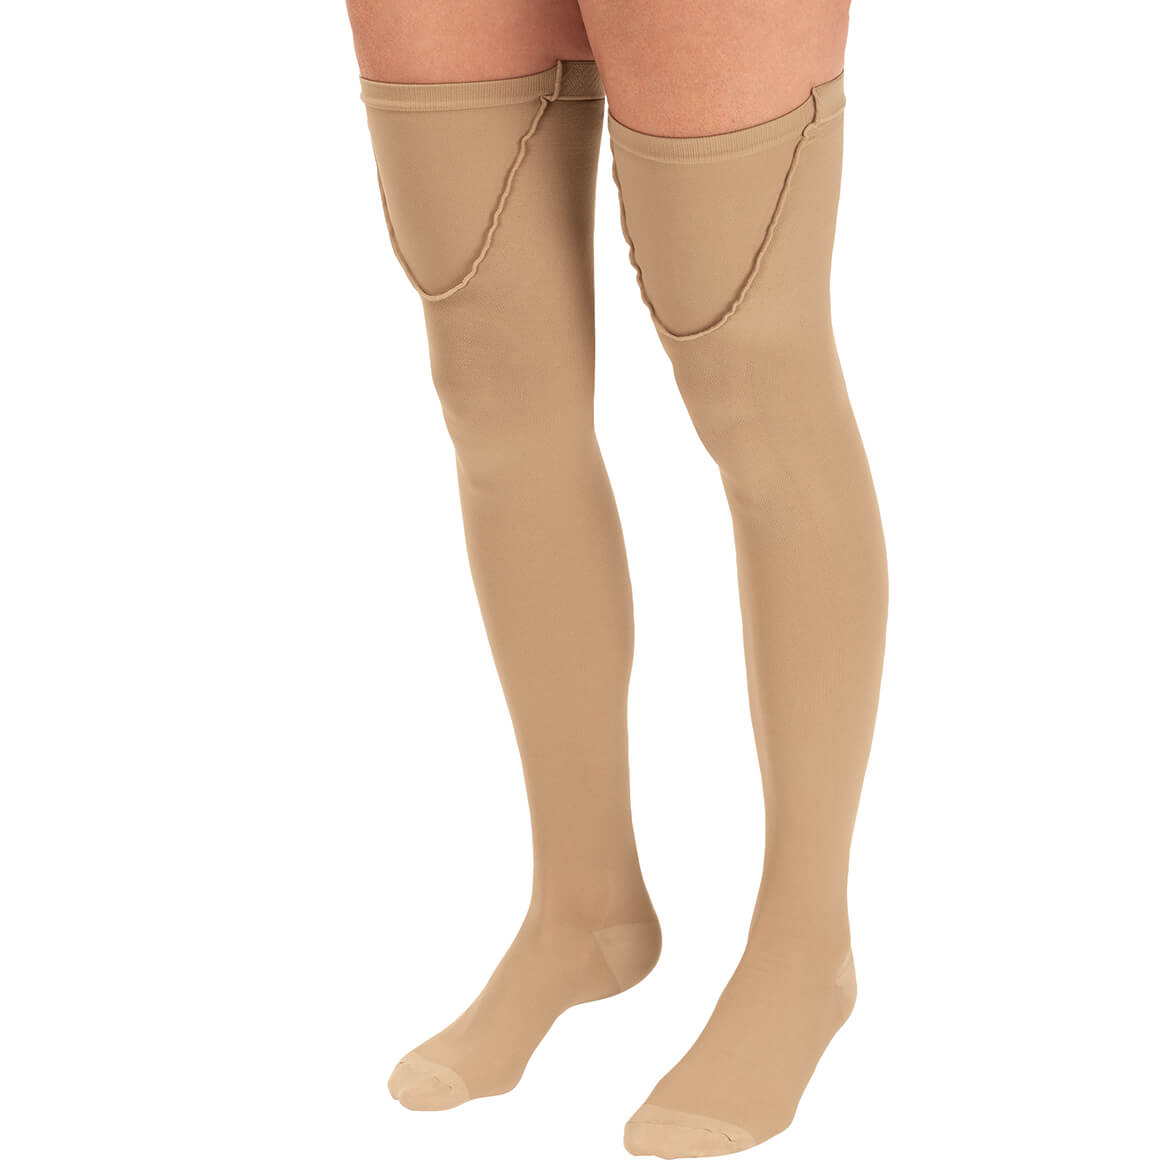 Silver Steps™ Anti-Embolism Thigh-High Closed Toe Stockings-368291